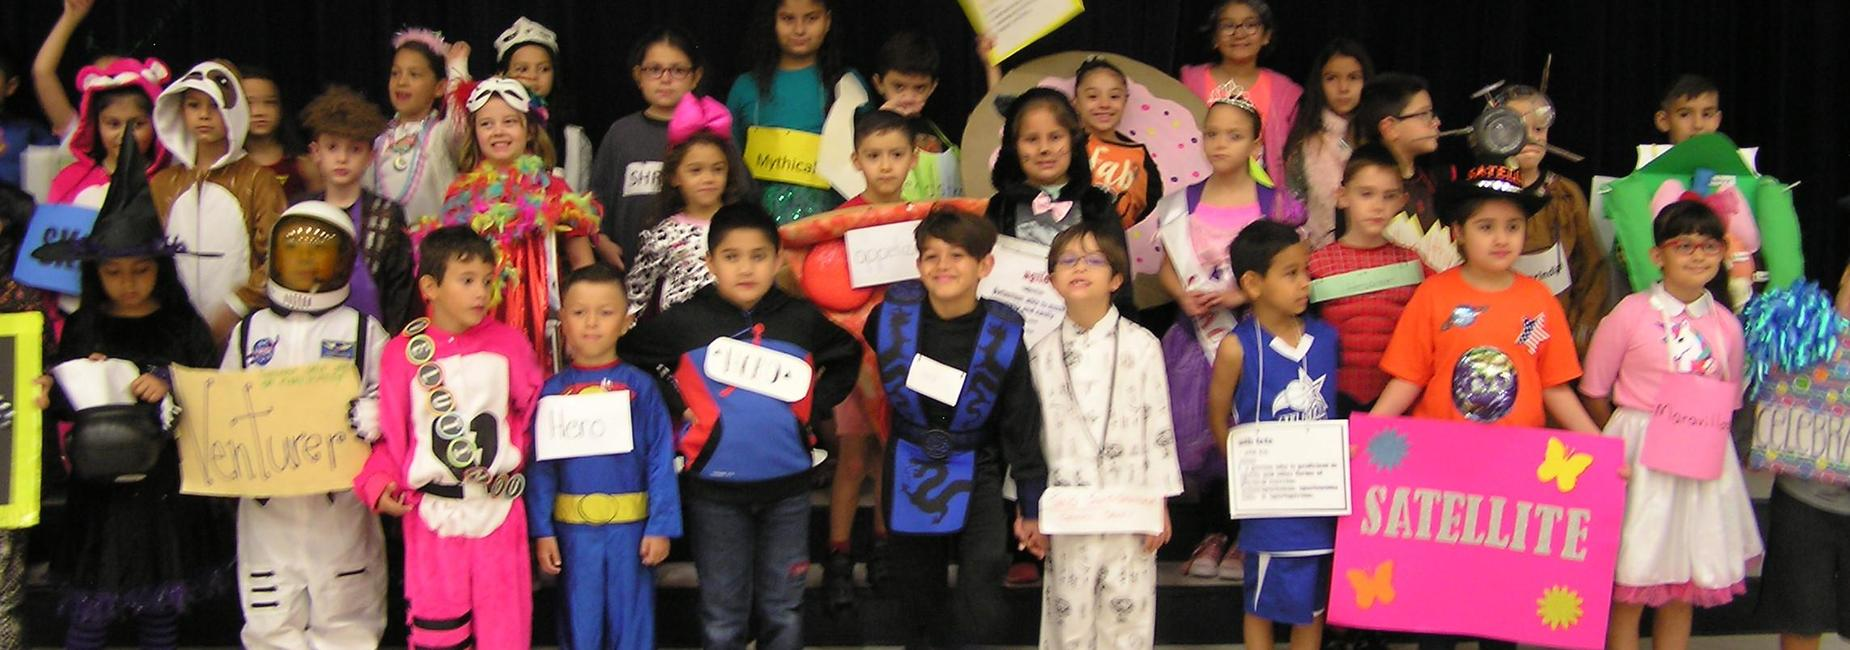 Second grade students who participated in the vocabulary parade